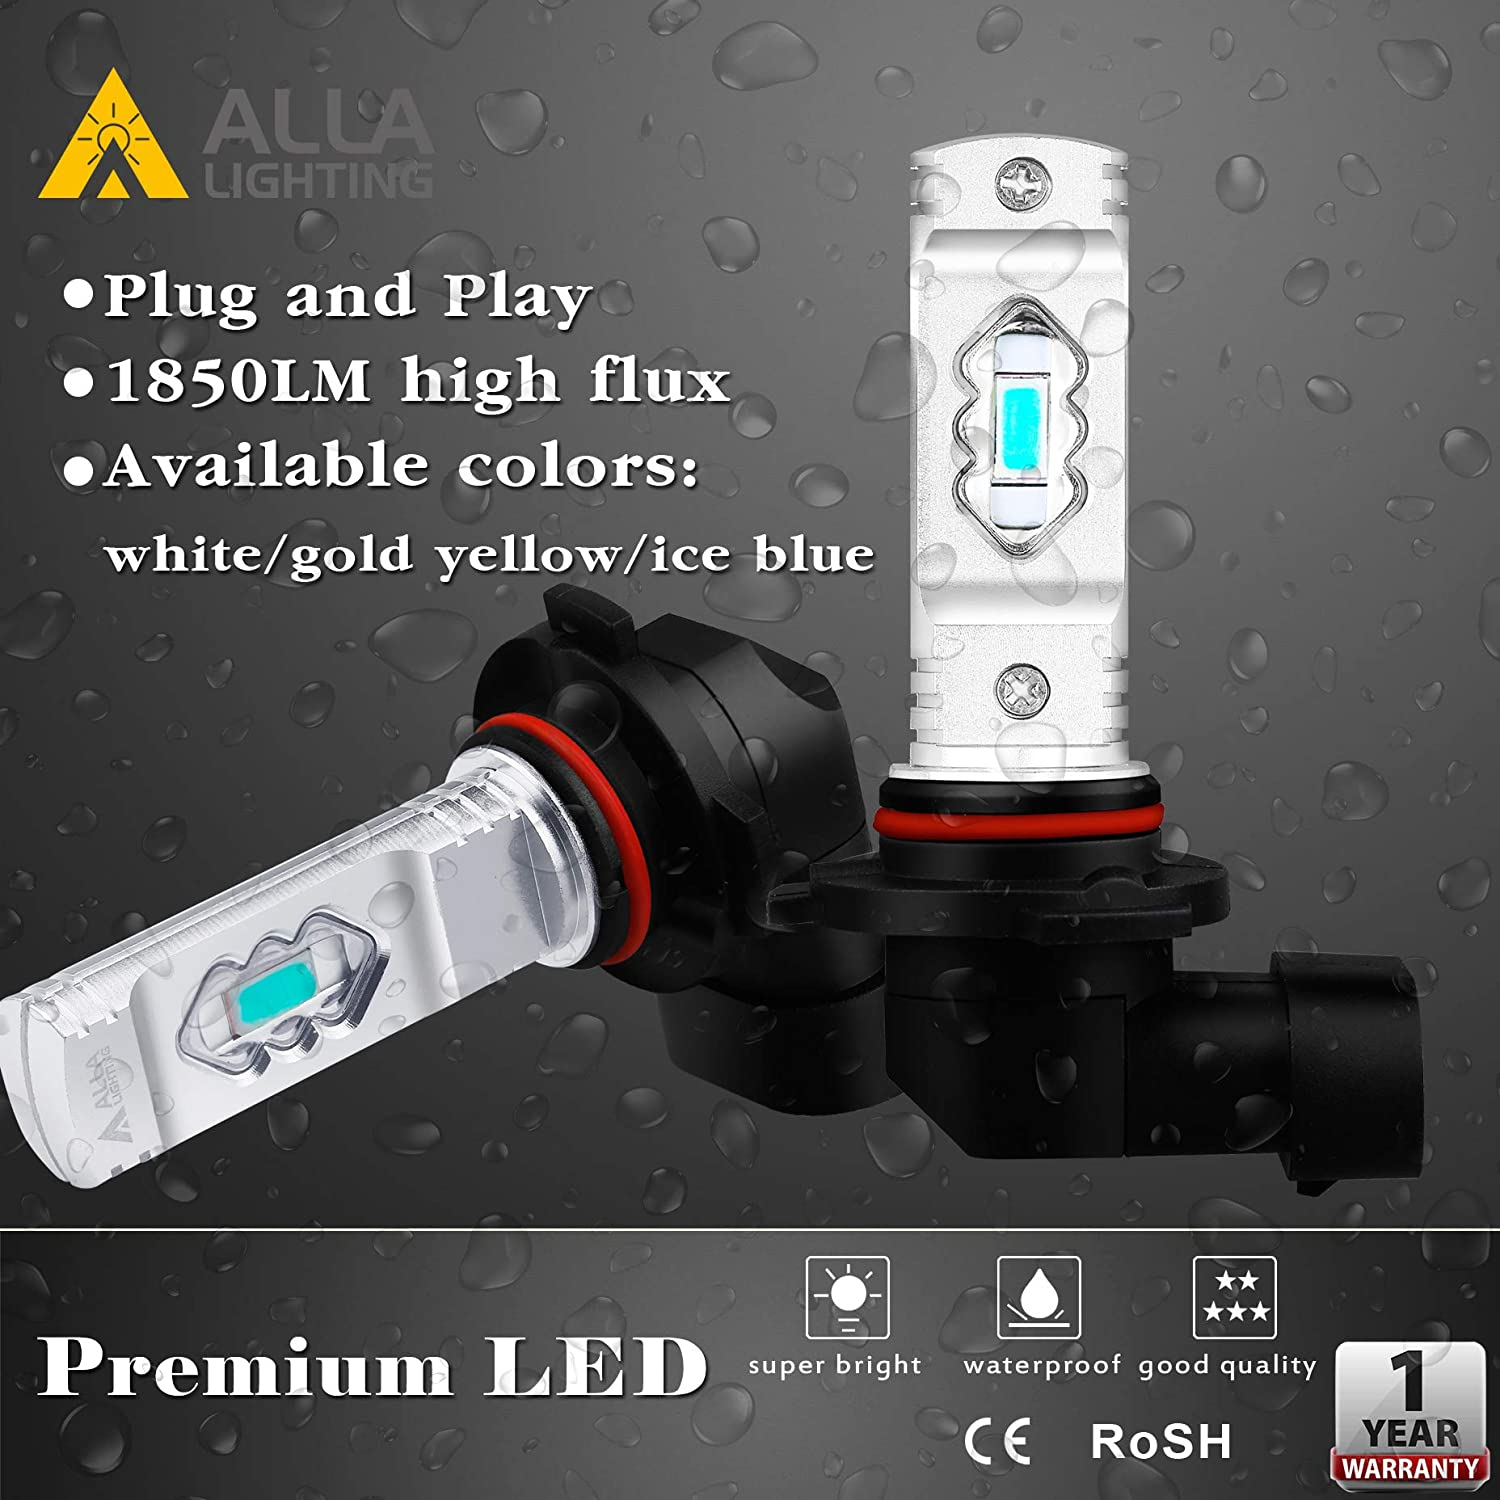 Alla Lighting 3800lm 889 881 LED Fog Light Bulbs Xtreme Super Bright 898 881 LED Bulb ETI 56-SMD LED 881 Bulb for Auto Motorcycle Cars Trucks SUVs Fog DRL Lights Set of 2 3000K Amber Yellow